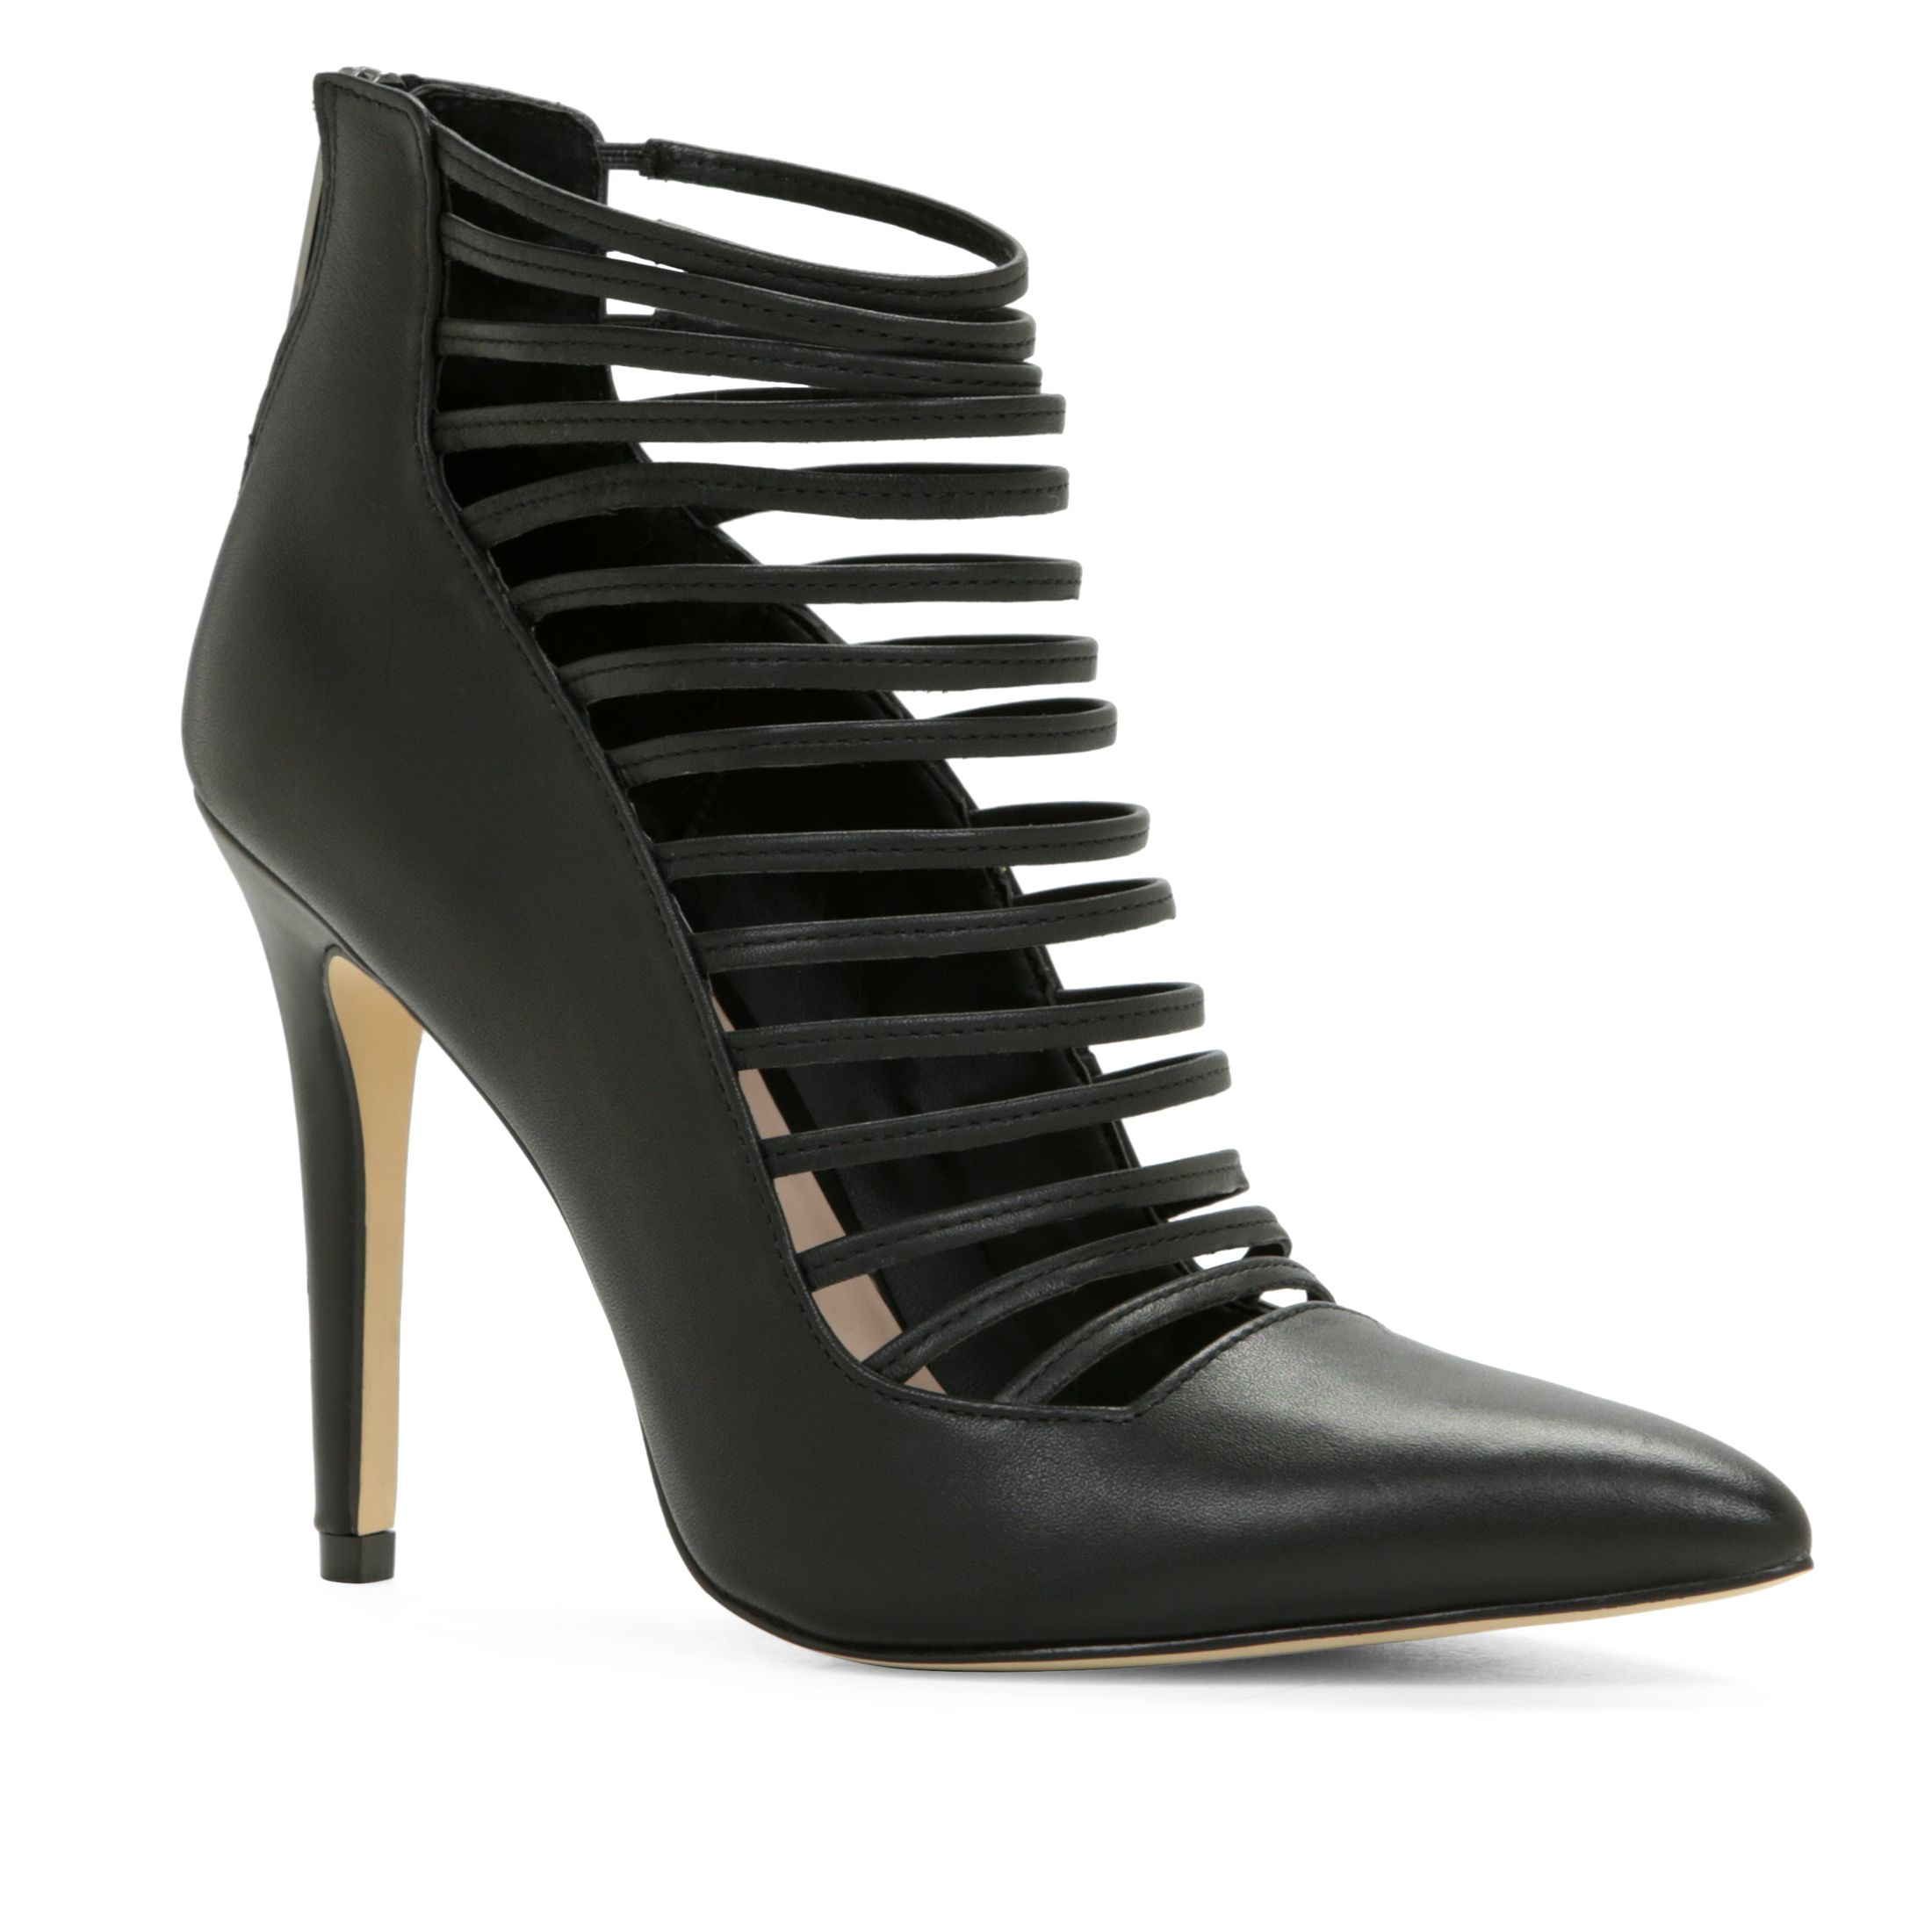 aldo astevia high heel caged shoe boots in black lyst